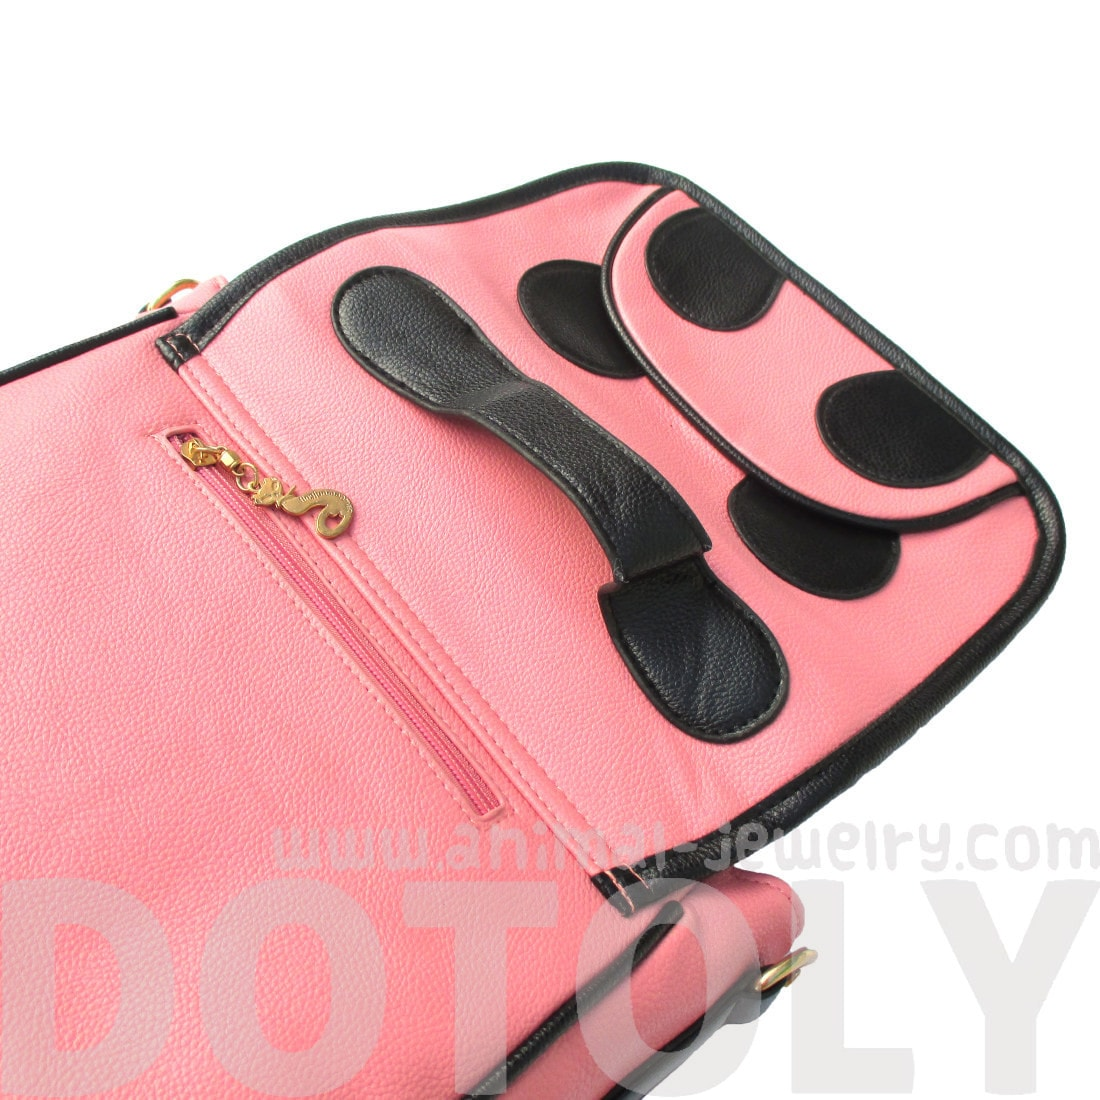 Panda Bear Animal Themed Cross body Shoulder Messenger Bag in Pink